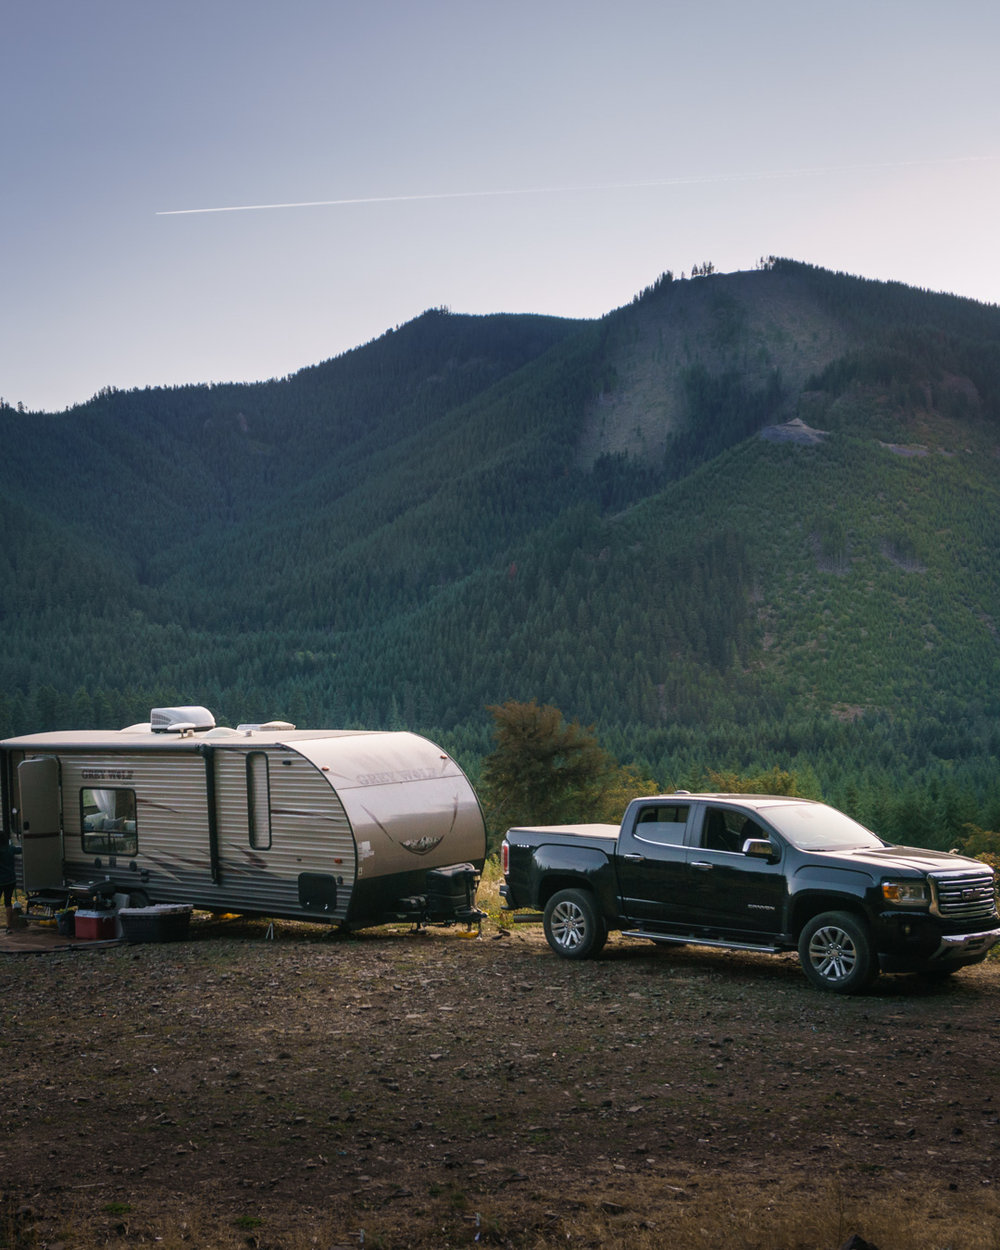 Our Travel Trailer made it into some pretty rugged, but epic spots!